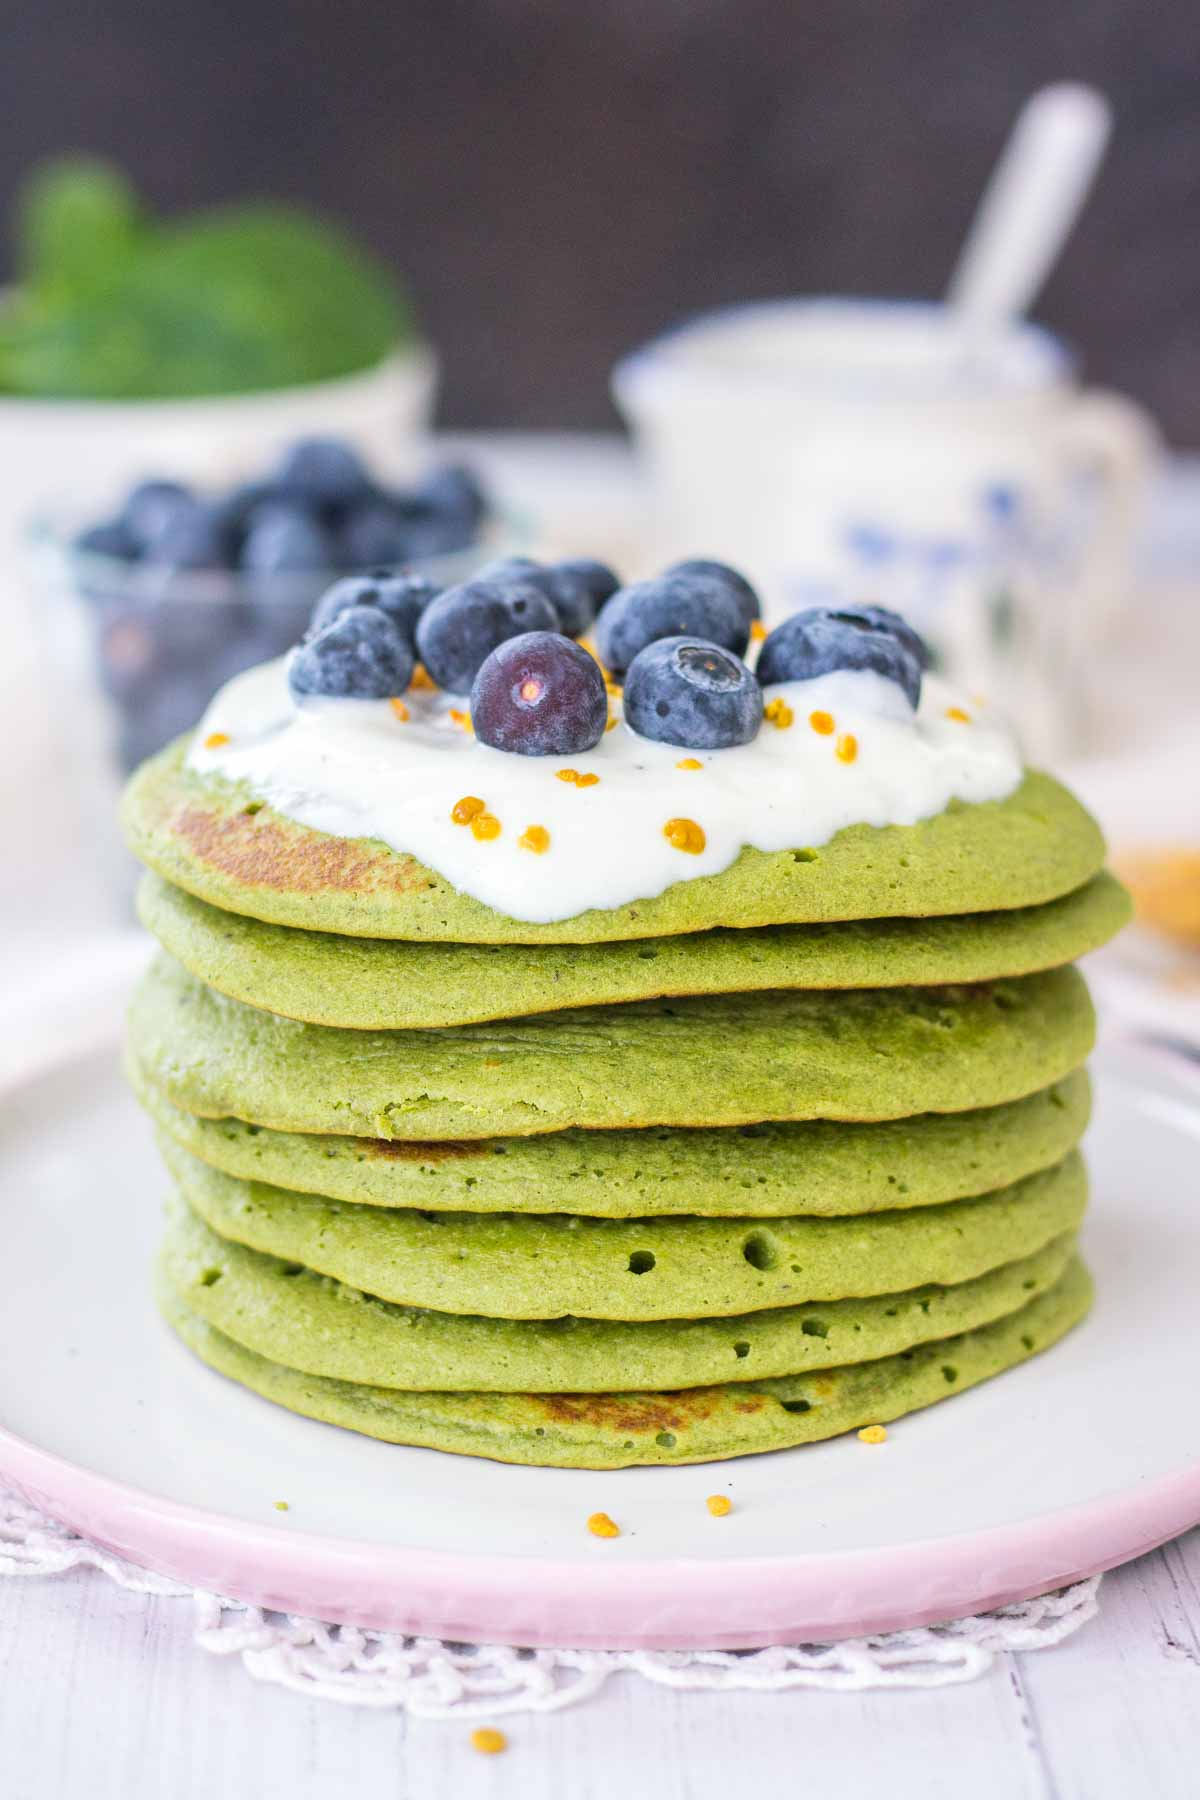 Healthy Matcha Pancakes topped with yogurt and blueberries.